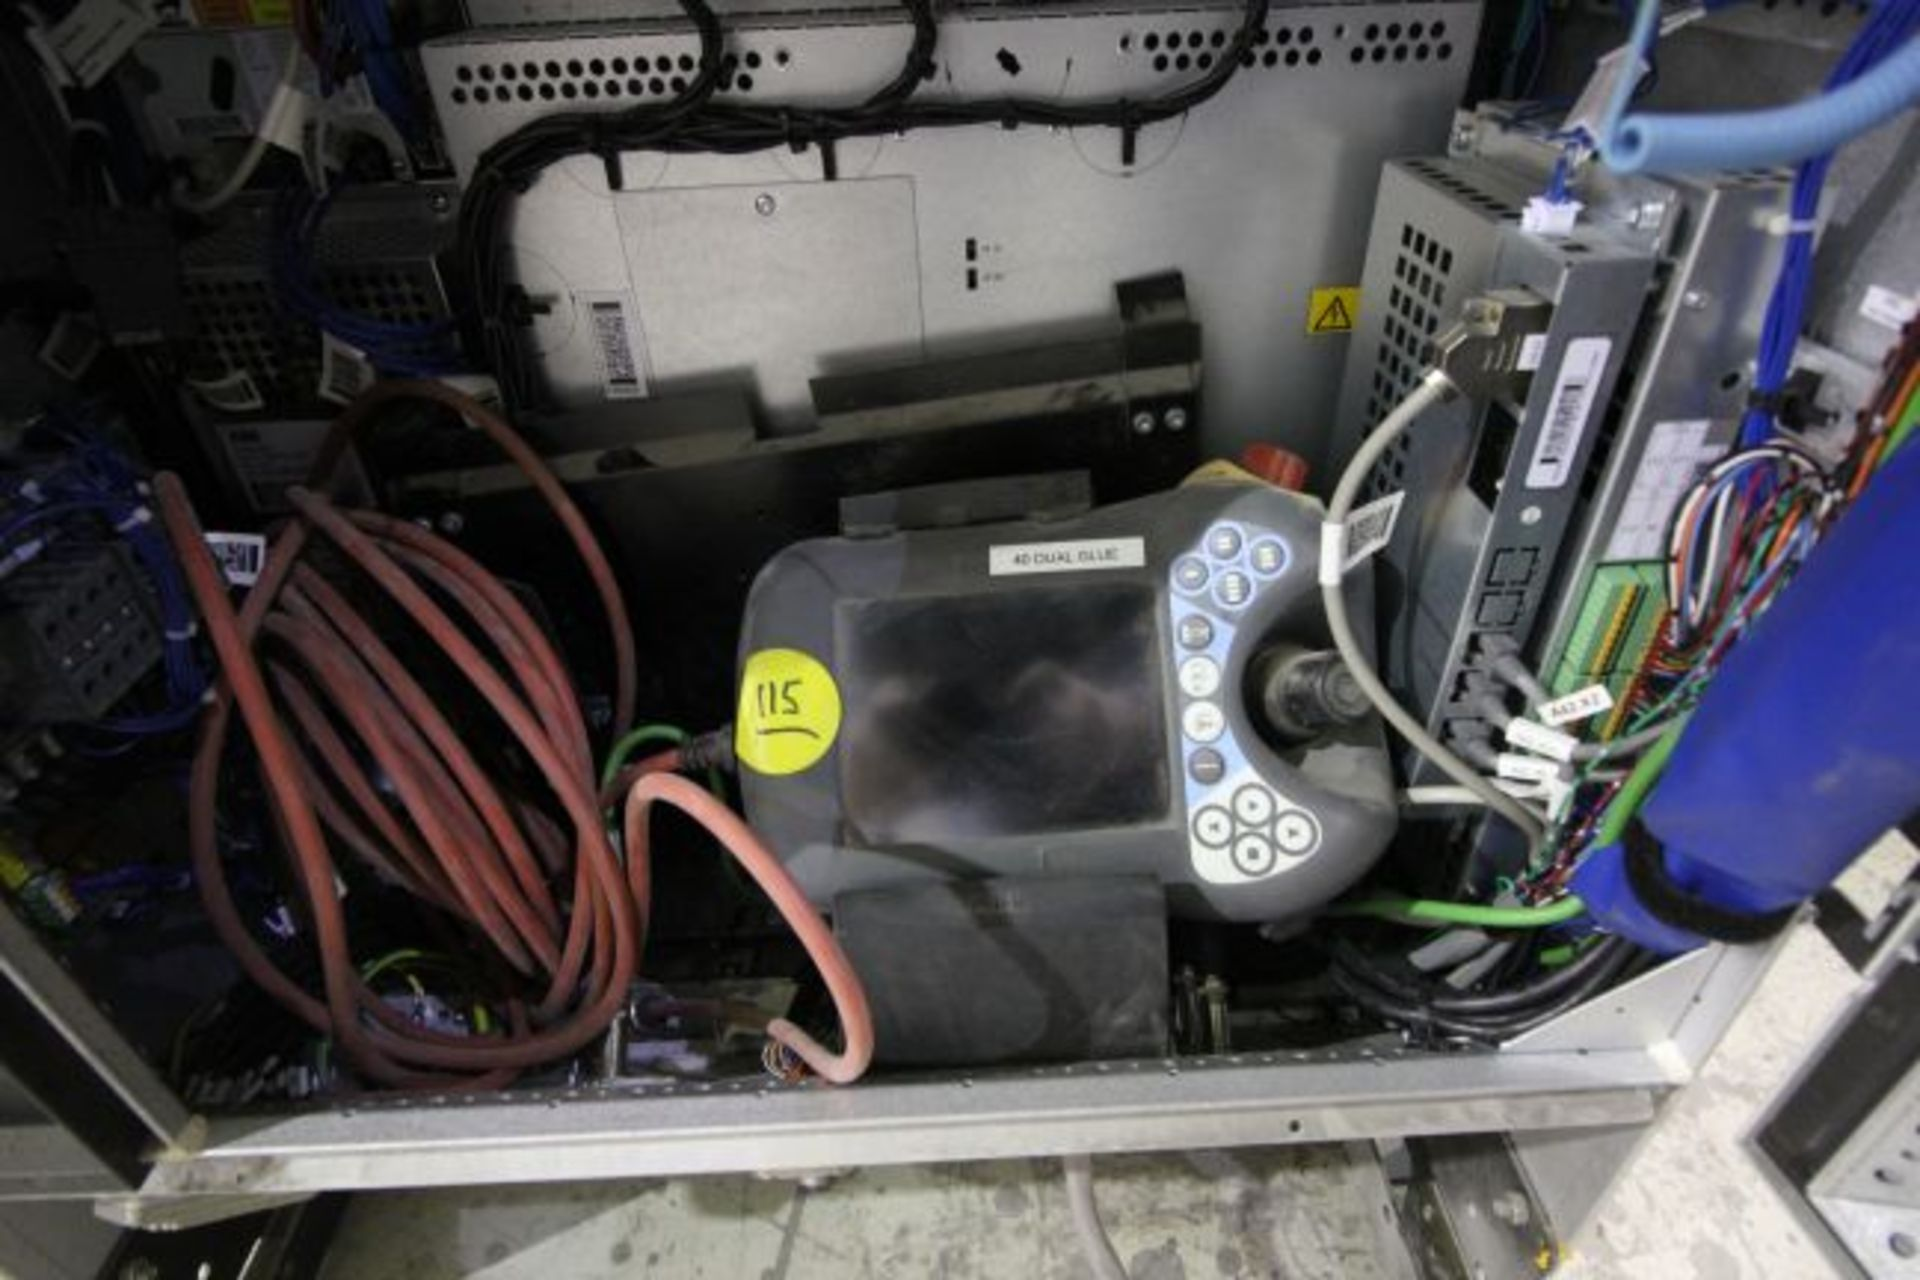 ABB ROBOT IRB 4600 2.55/40KG WITH IRC5 CONTROLS, YEAR 2014, SN 500798 TEACH PENDANT& CABLES - Image 7 of 9